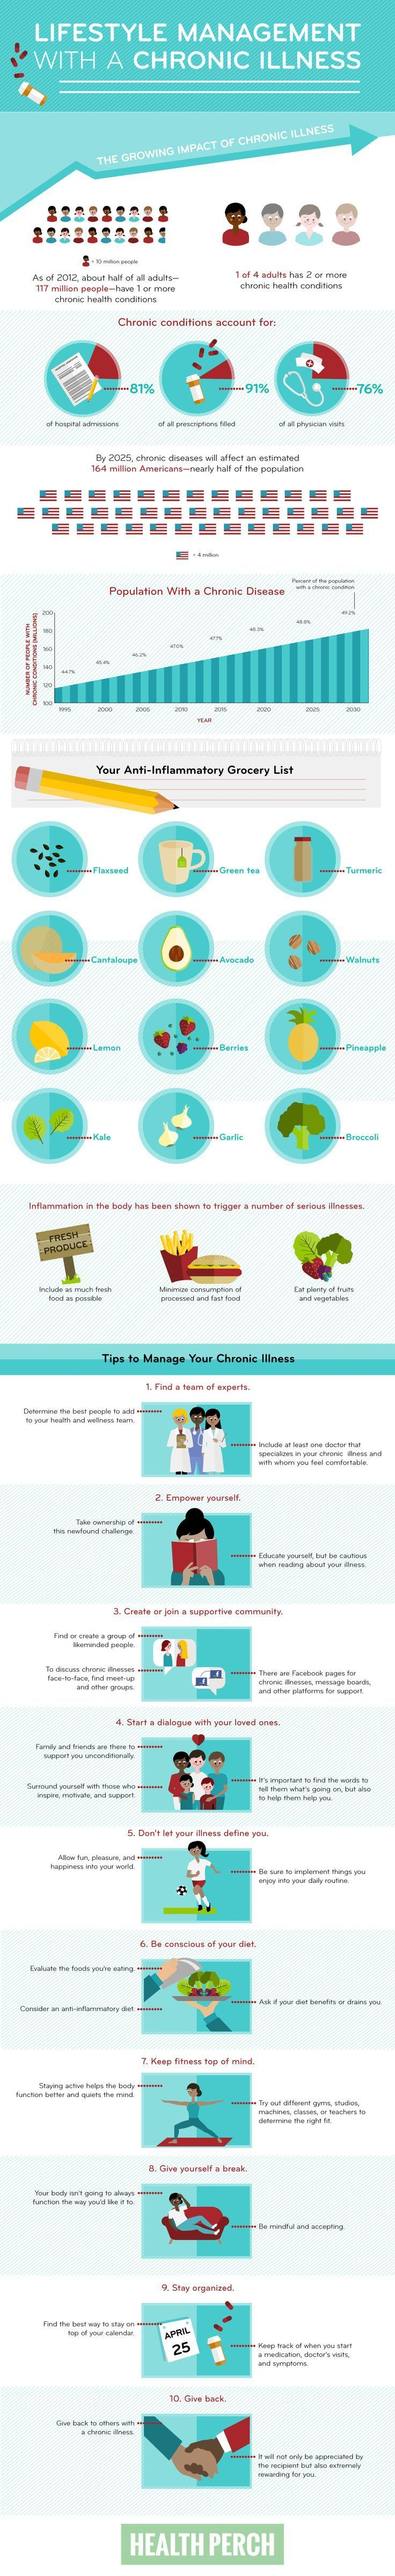 Lifestyle Management with a chronic pain condition or chronic illness - this infographic steps you through some statistics about chronic pain and areas of your lifestyle that you will need to modify and/or monitor.